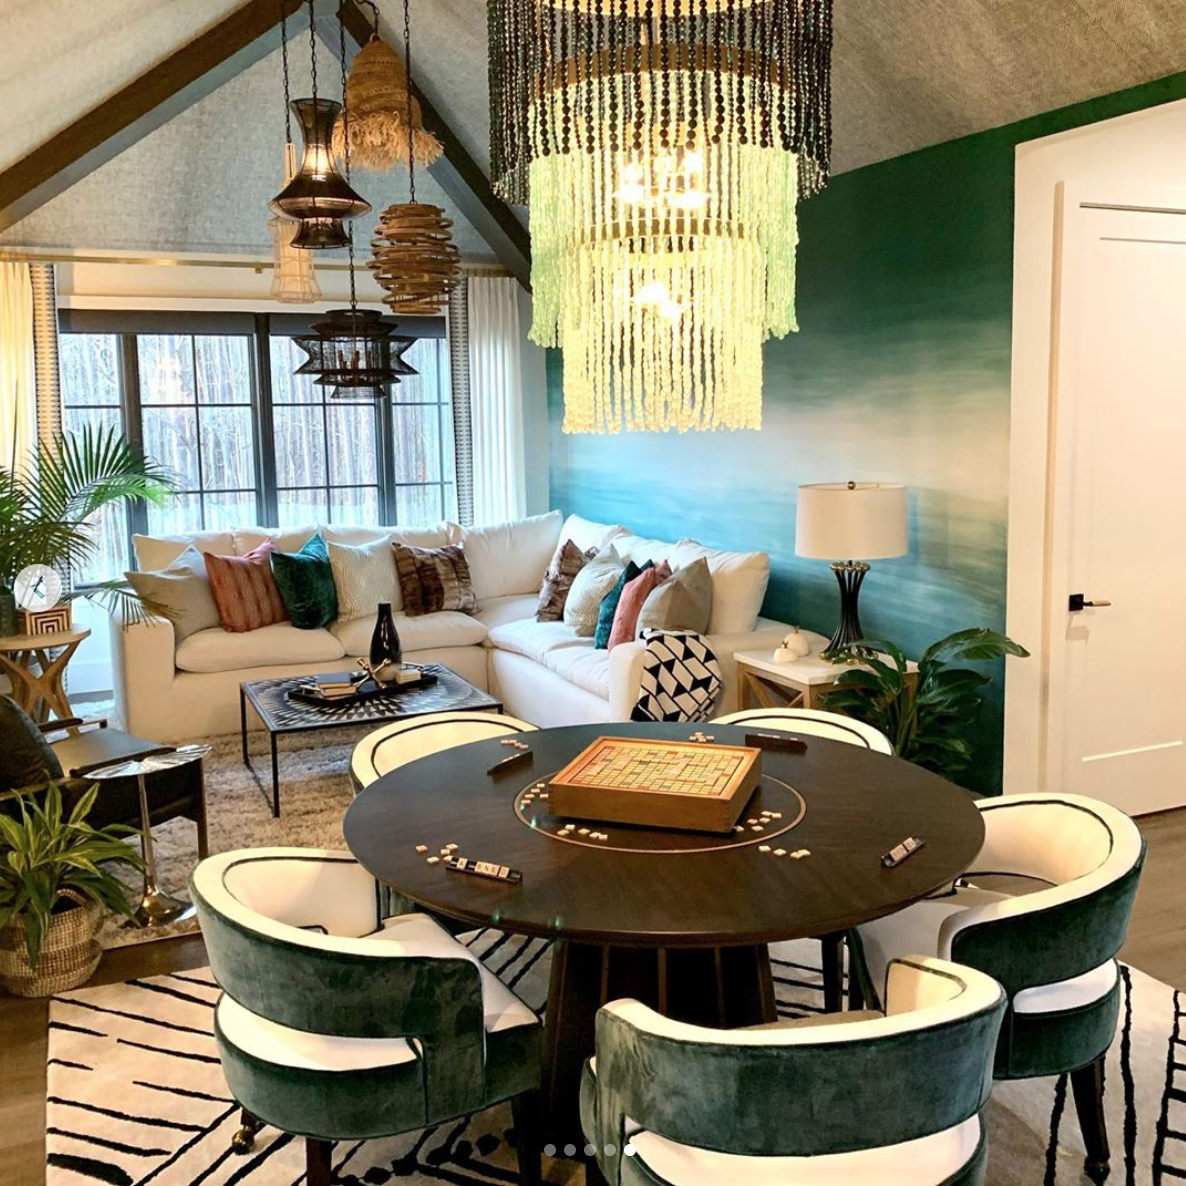 Designers Make Their Mark With Showhomes